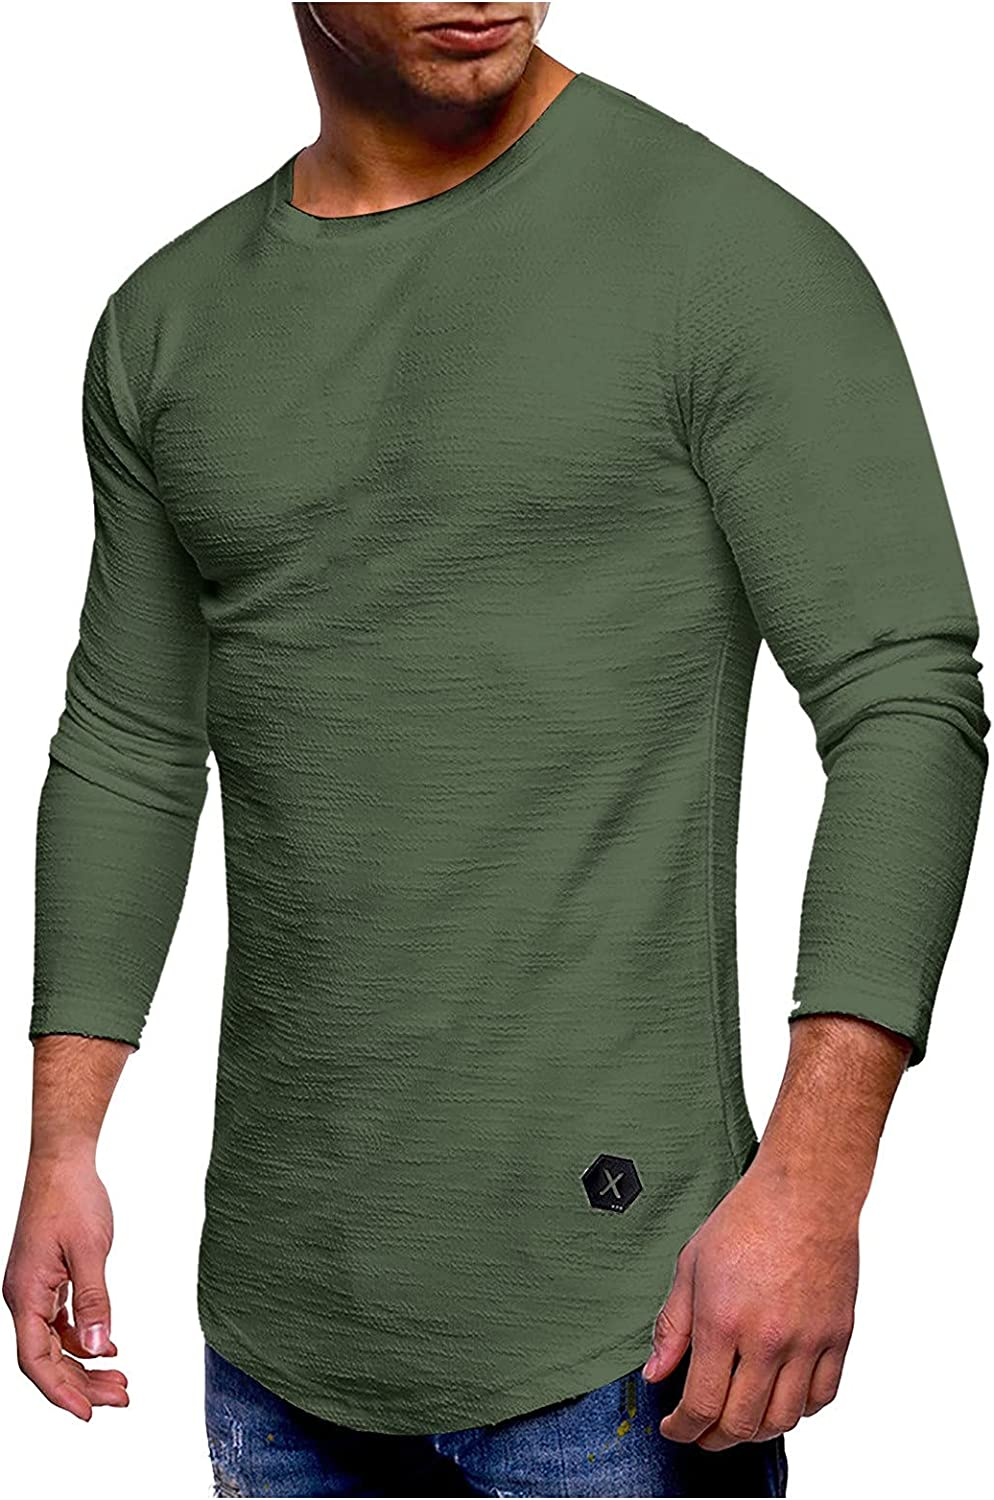 XXBR Long Sleeve T-shirts for Mens, Fall Slub Cotton Round Neck Workout Athletics Basic Tee Casual Slim Fit Sports Tops